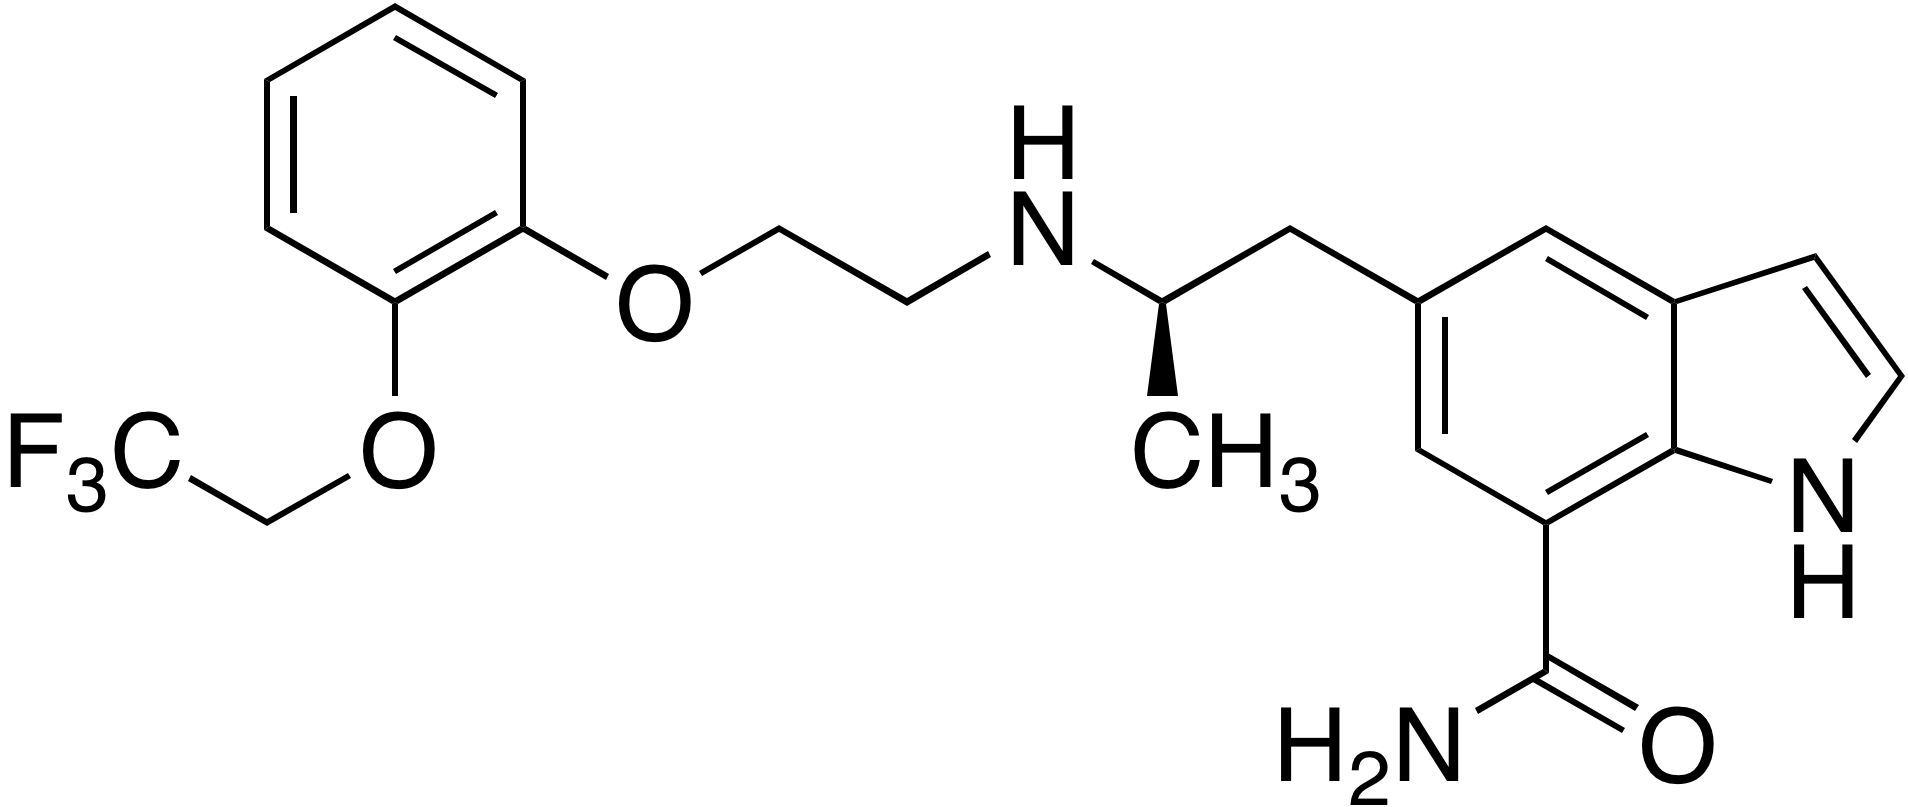 Silodosin impurity 13